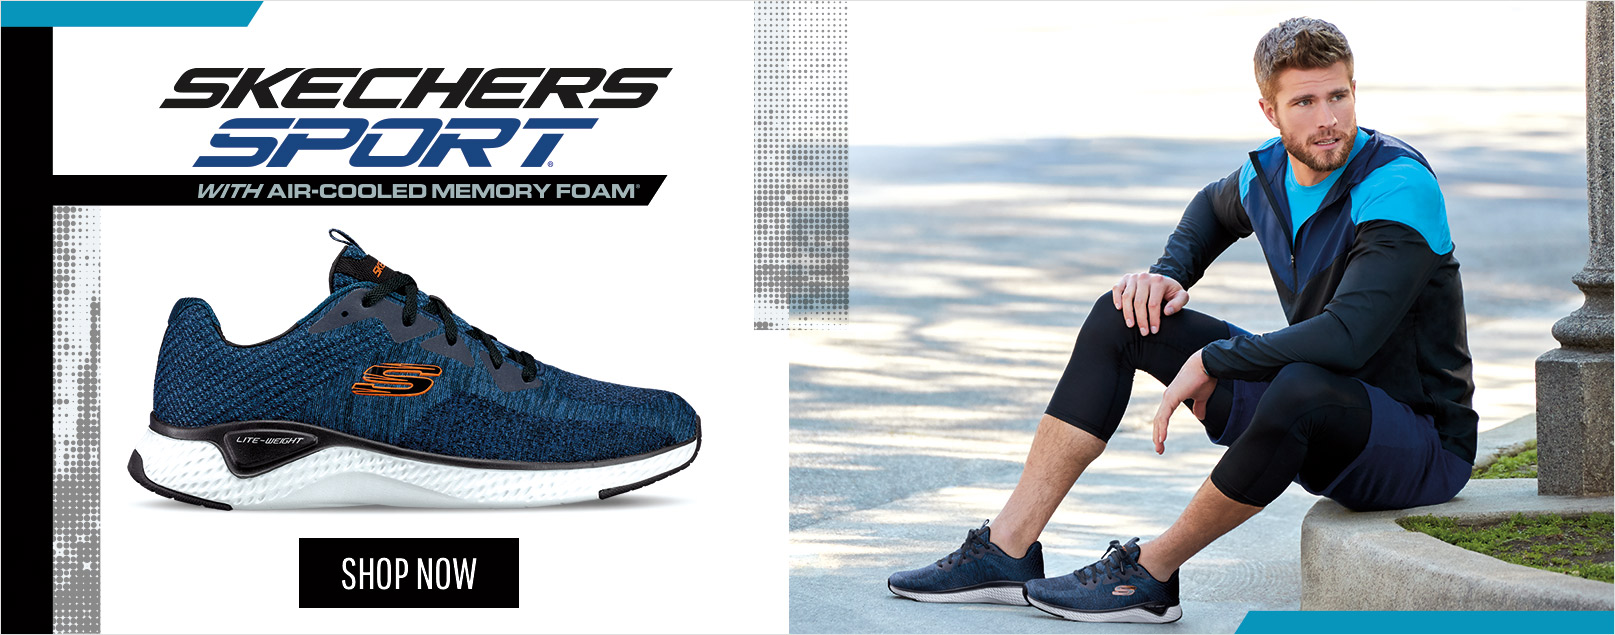 Find the latest athletic shoes at Skechers.com featuring Skechers Sport - the Solar Fuse design is comfortable, lightweight and ideal for training at the gym.